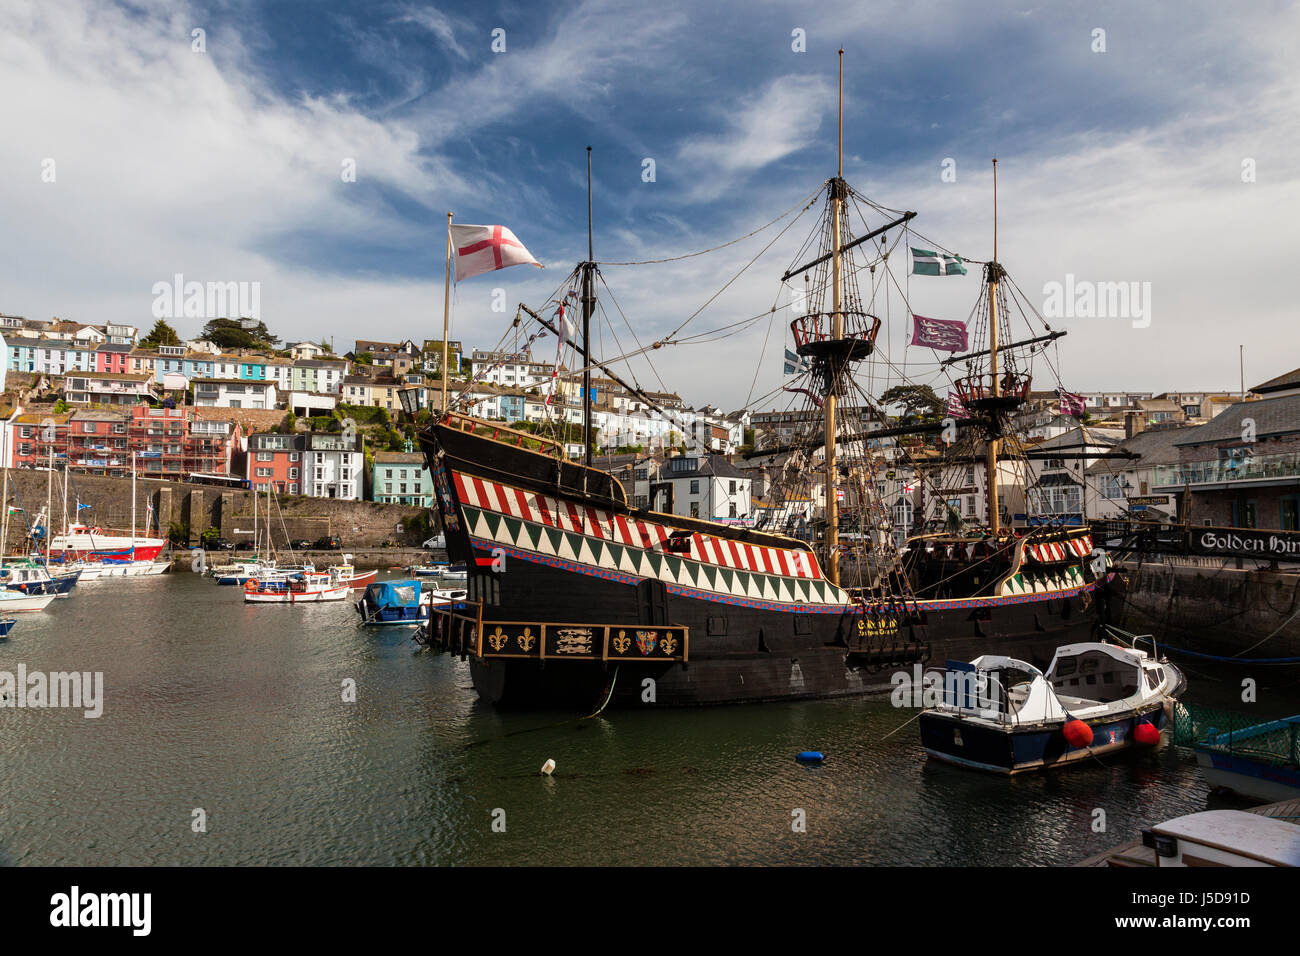 A replica of The Golden Hind captained by Sir Francis Drake, Brixham harbour, South Devon, England - Stock Image